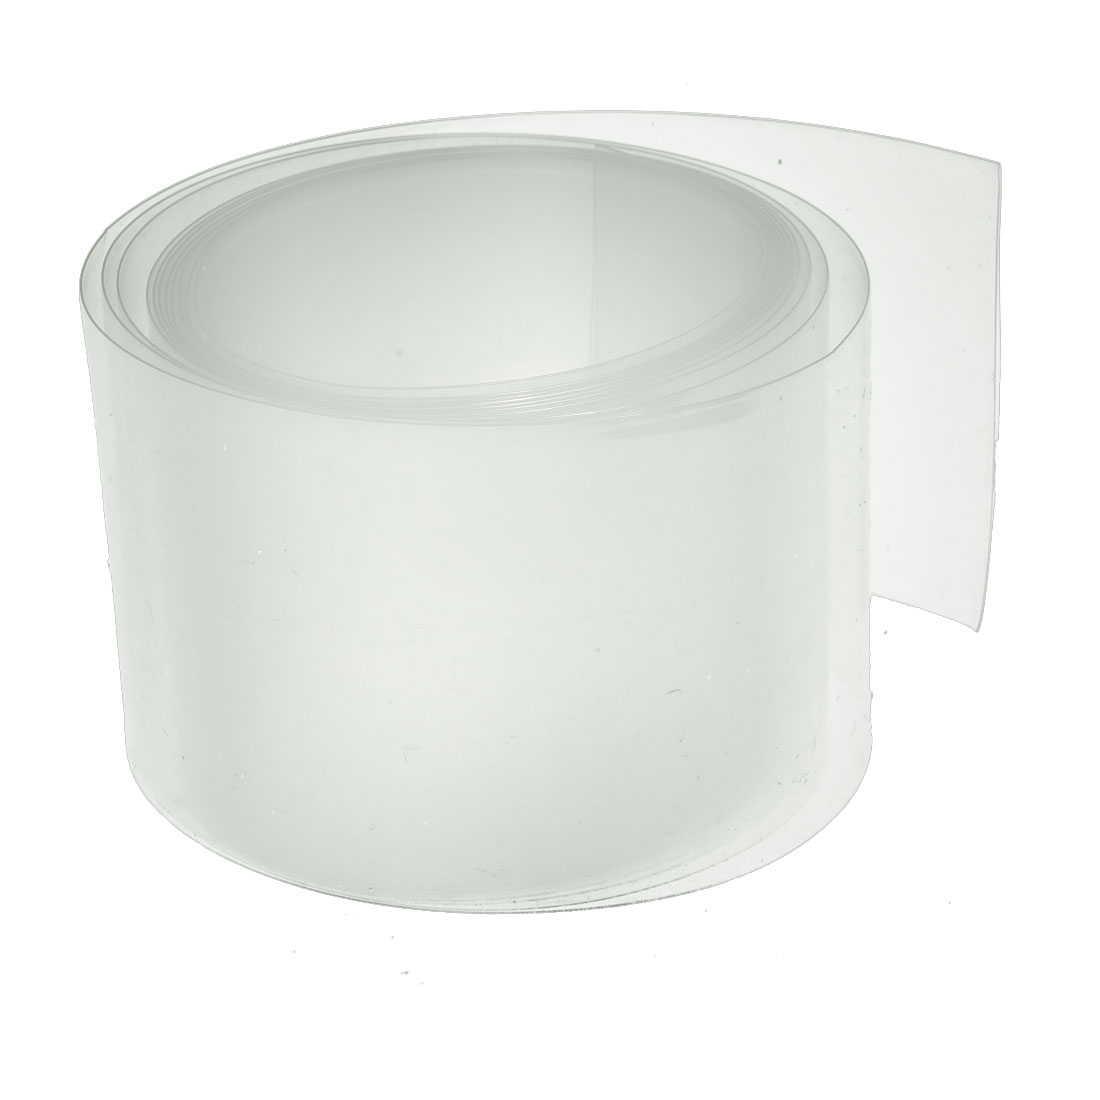 45mm Flat Width 2M Length PVC Heat Shrinkable Tube Clear for Capacitive Battery